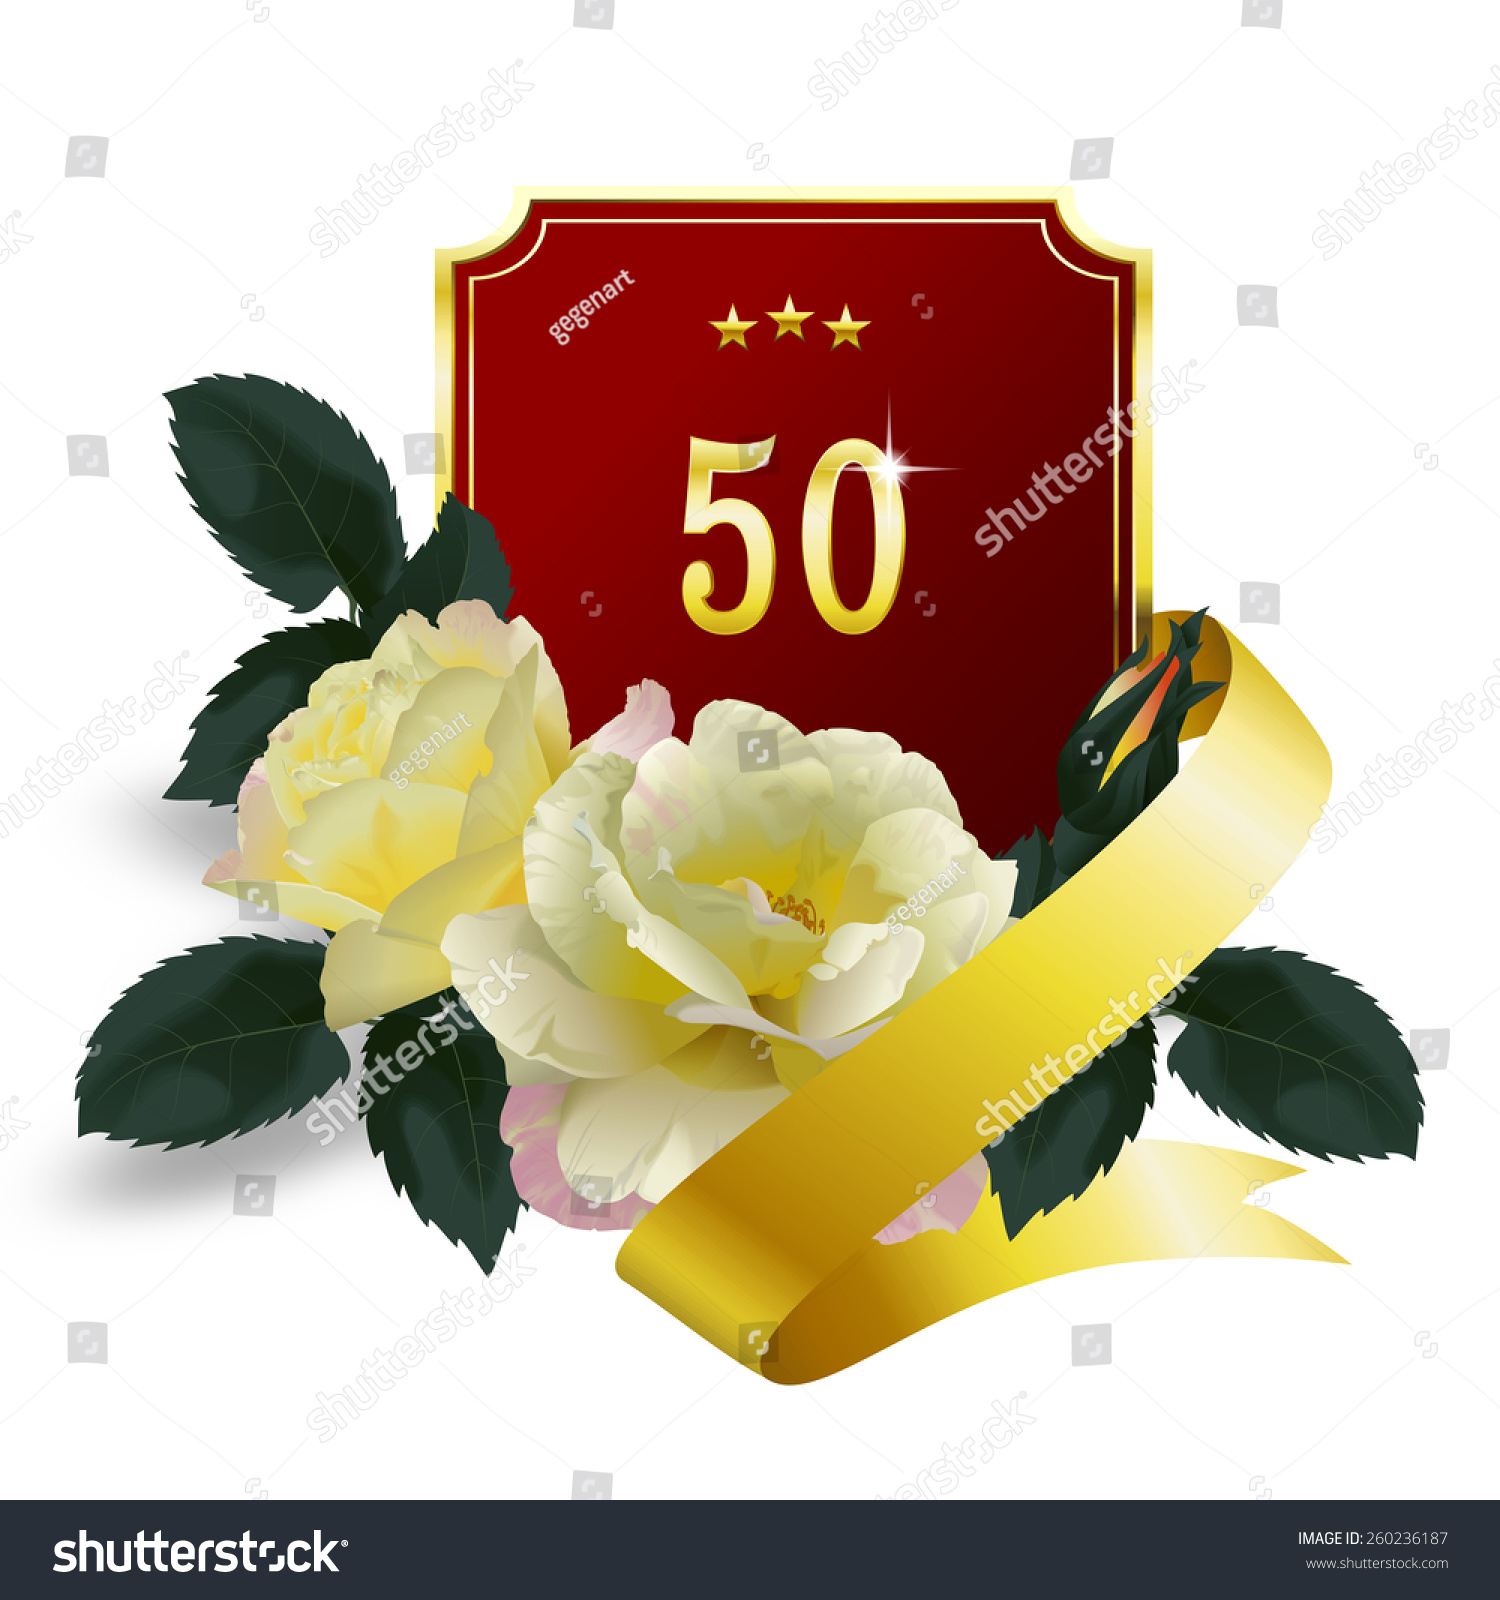 50th Anniversary Bouquet Yellow Roses Red Stock Illustration ...